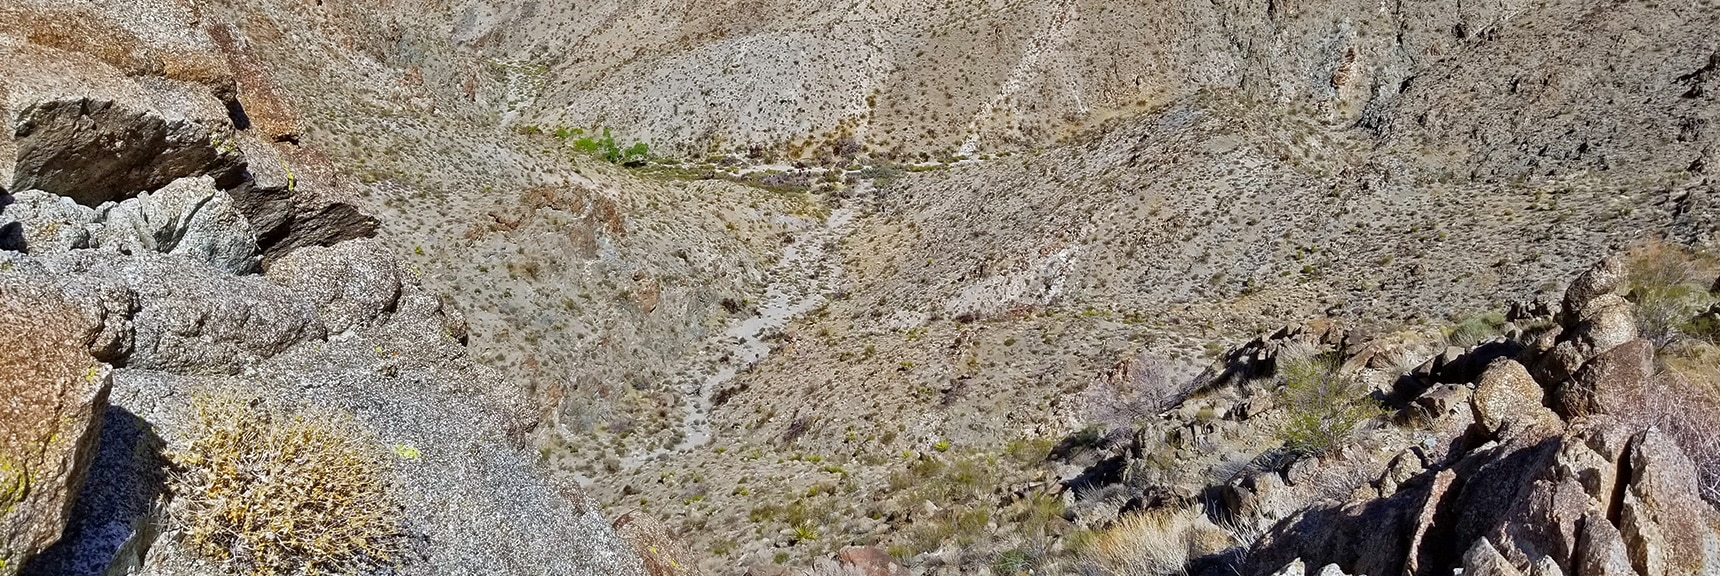 Aerial View of Horse Thief Canyon Springs and Canyon Intersection | Mt. Wilson | Lake Mead National Recreation Area, Arizona